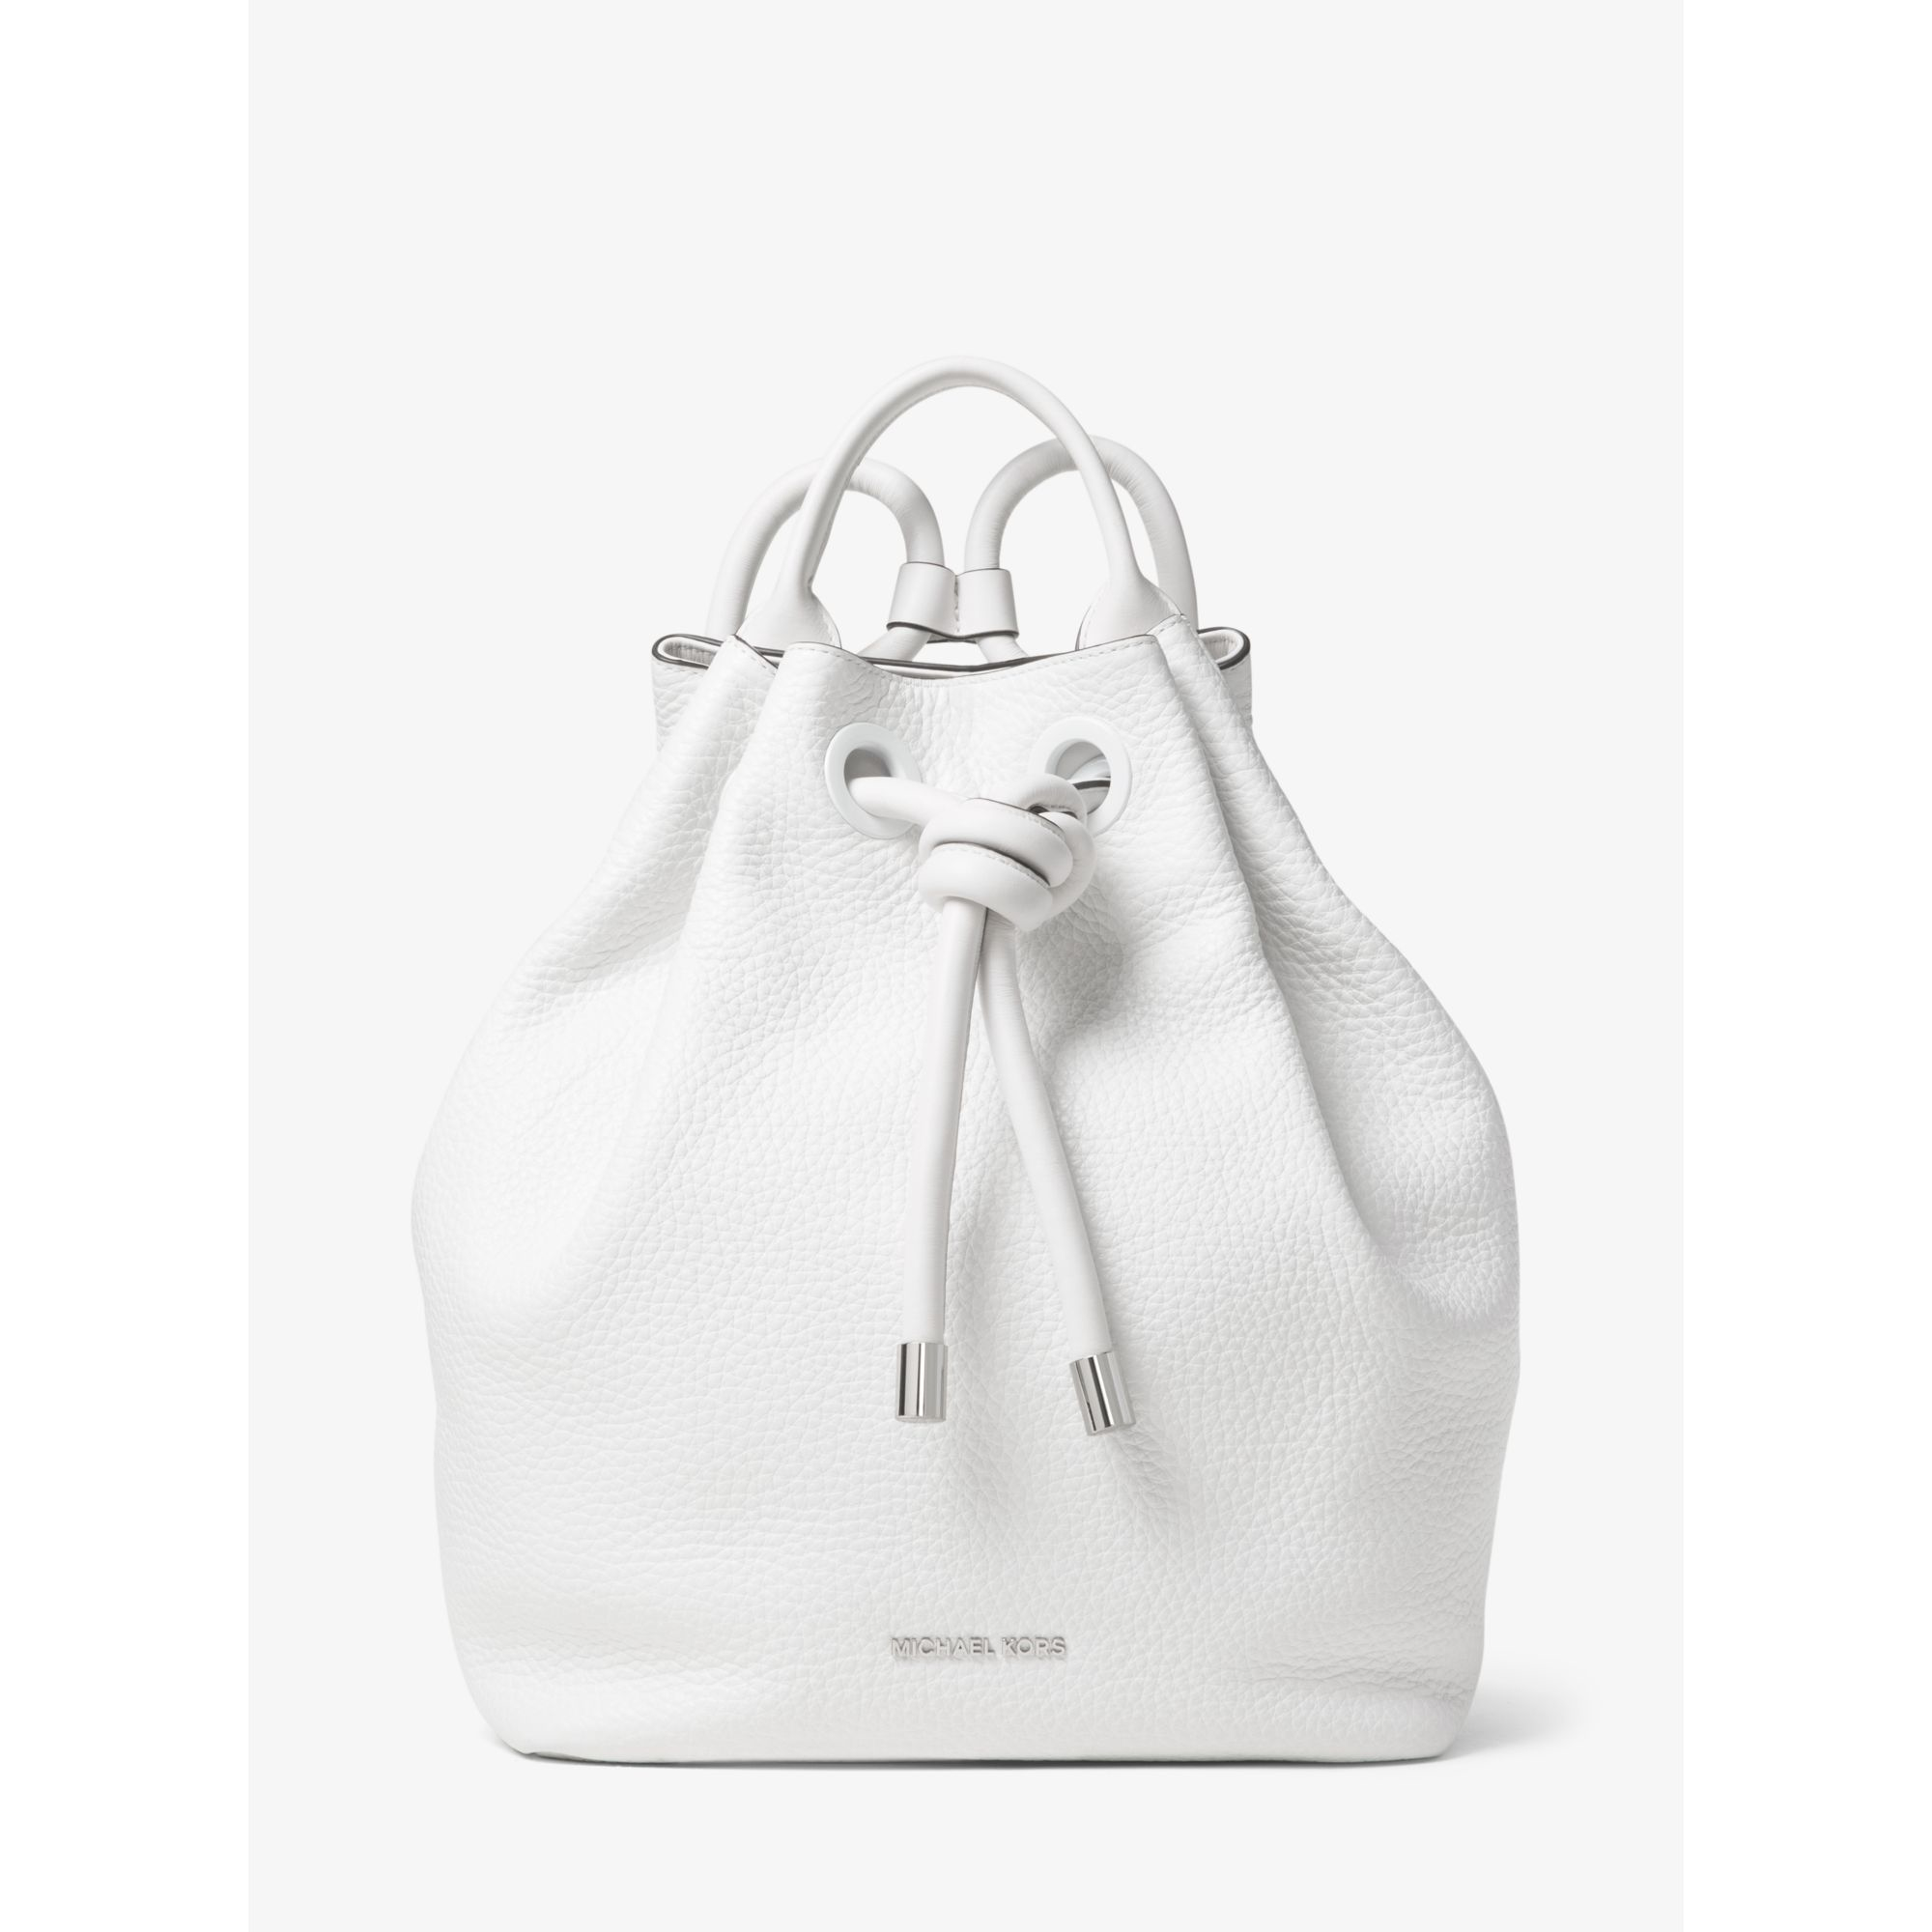 11421602ce6d ... spain lyst michael kors dalia large leather backpack in white 4cd67  99f73